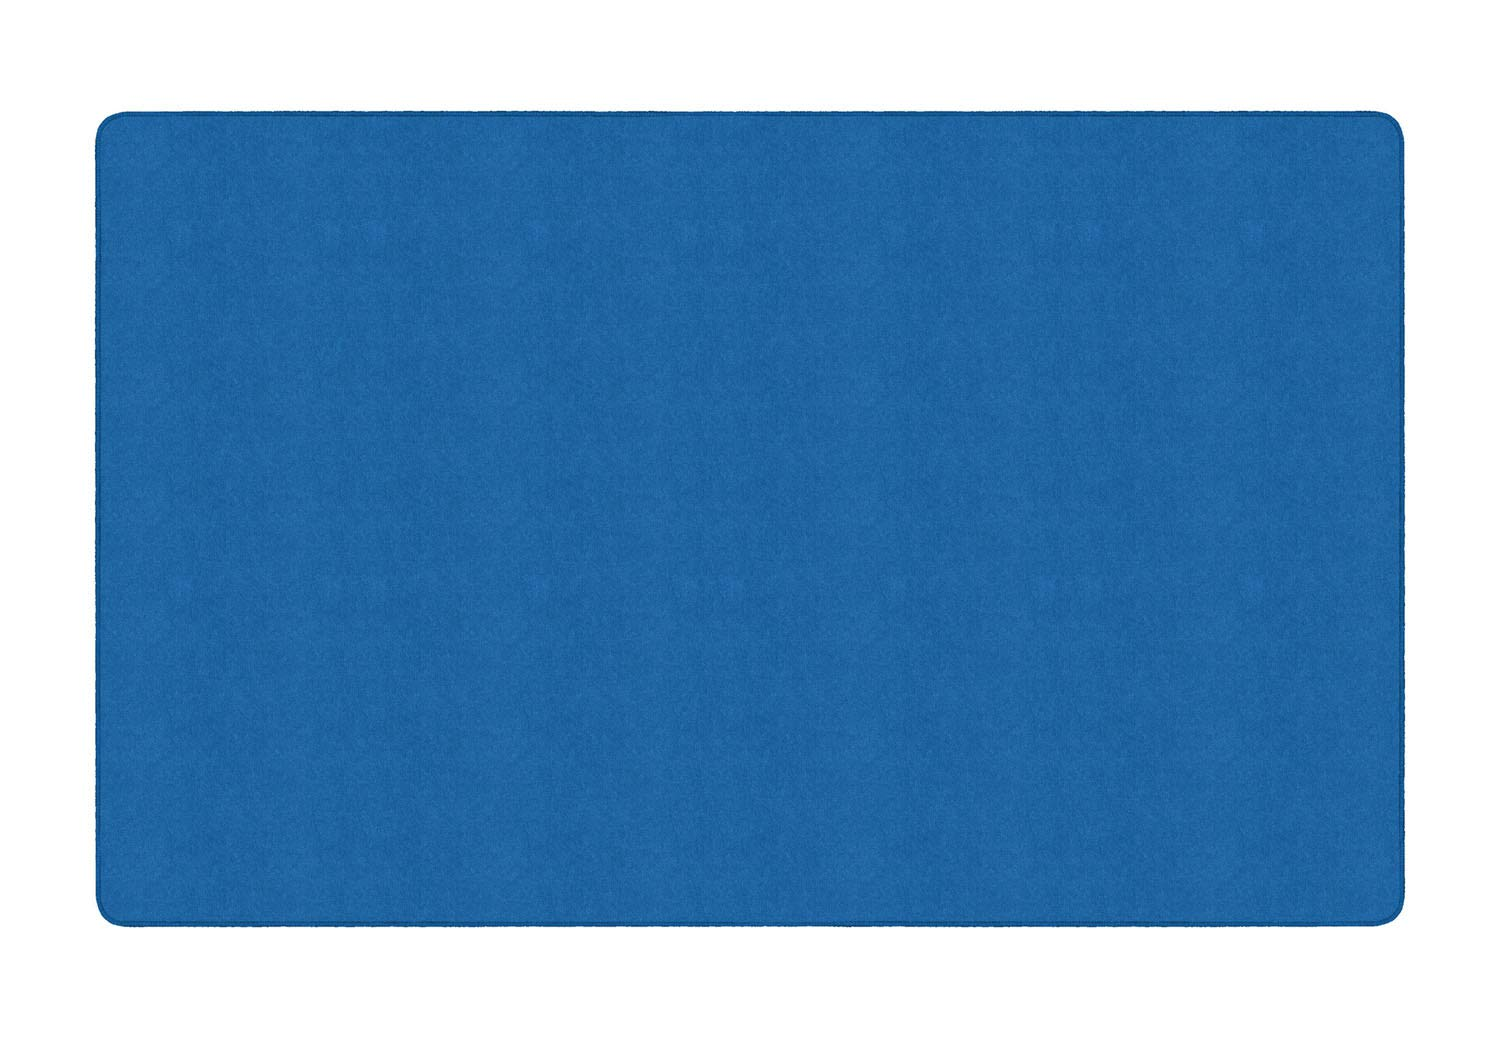 Flagship Carpets AS-44RB Americolors Collection 7'6'' x 12' Rectangle, Solid Royal Blue Colored Carpet, Double Stitched, Serged Edges, Made in USA